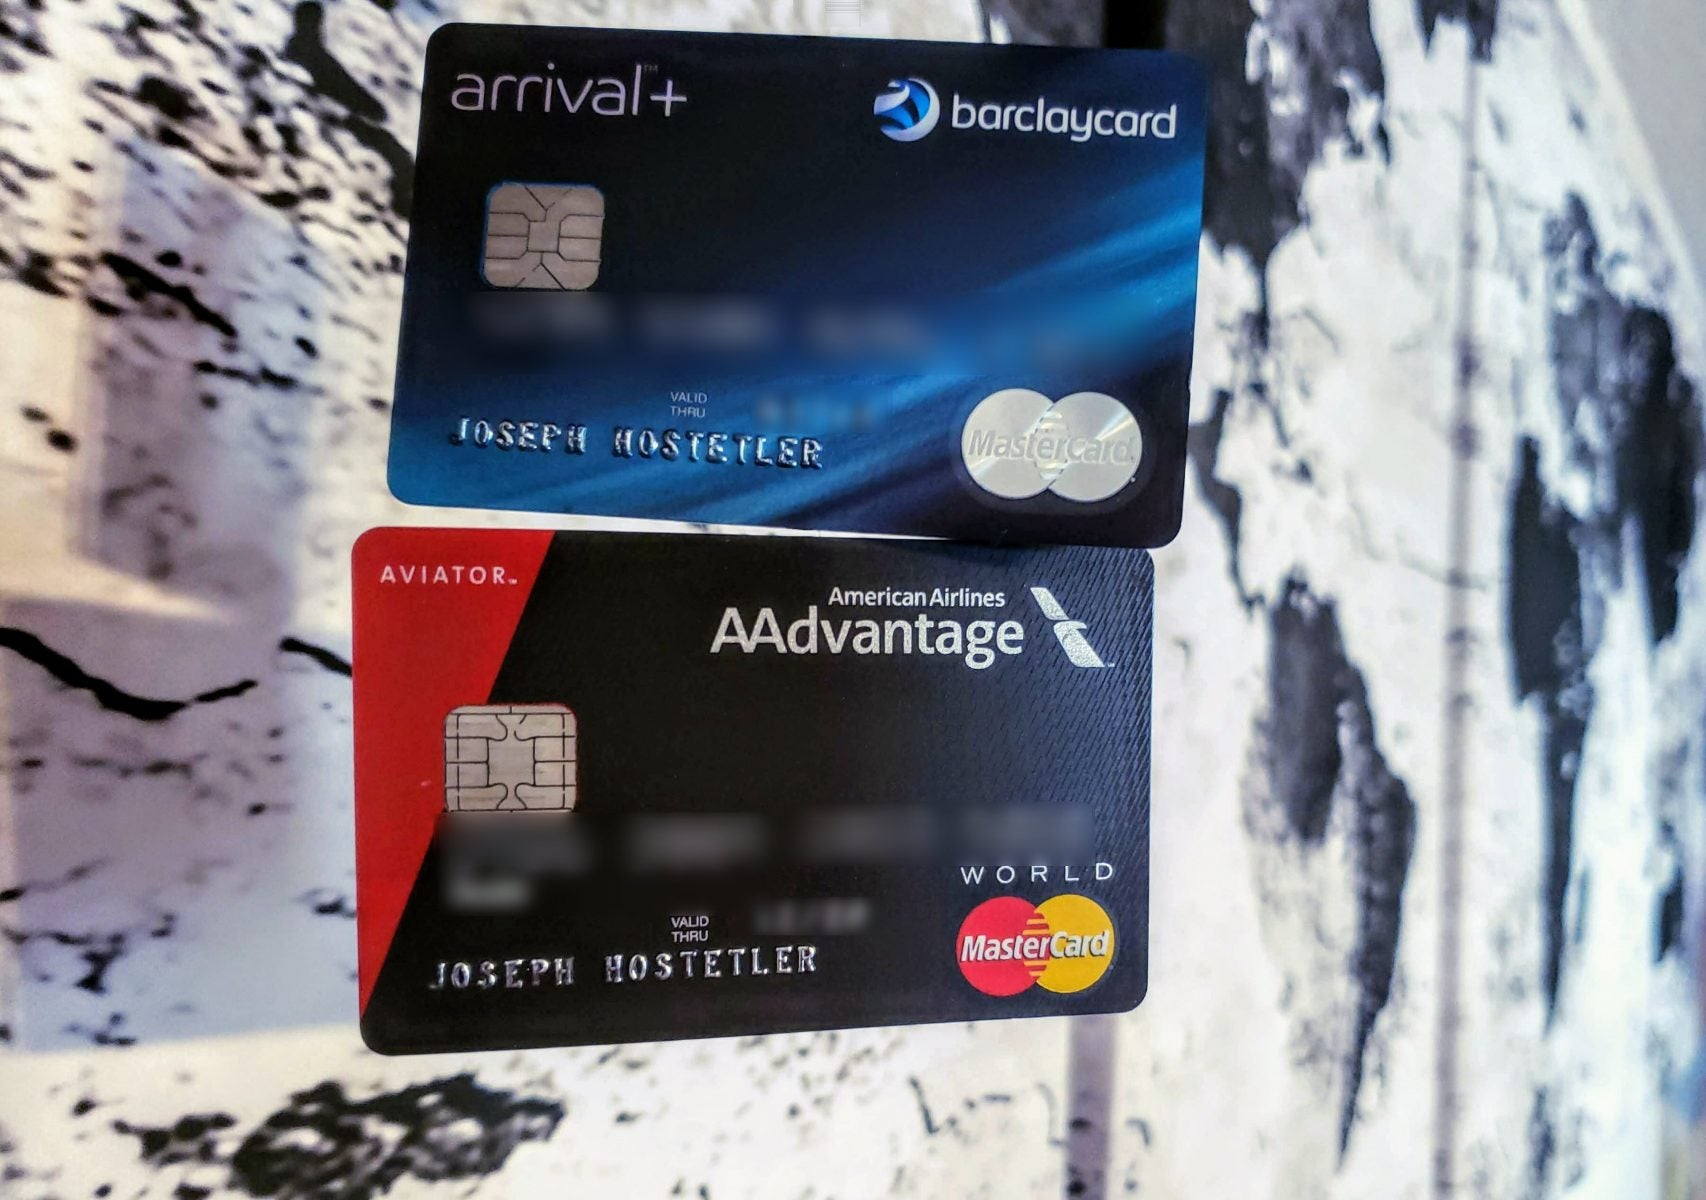 I Pay Annual Fees on 2 Credit Cards That I Never Use – But I'm Not Going to Cancel Them (Here's Why You Shouldn't Either)